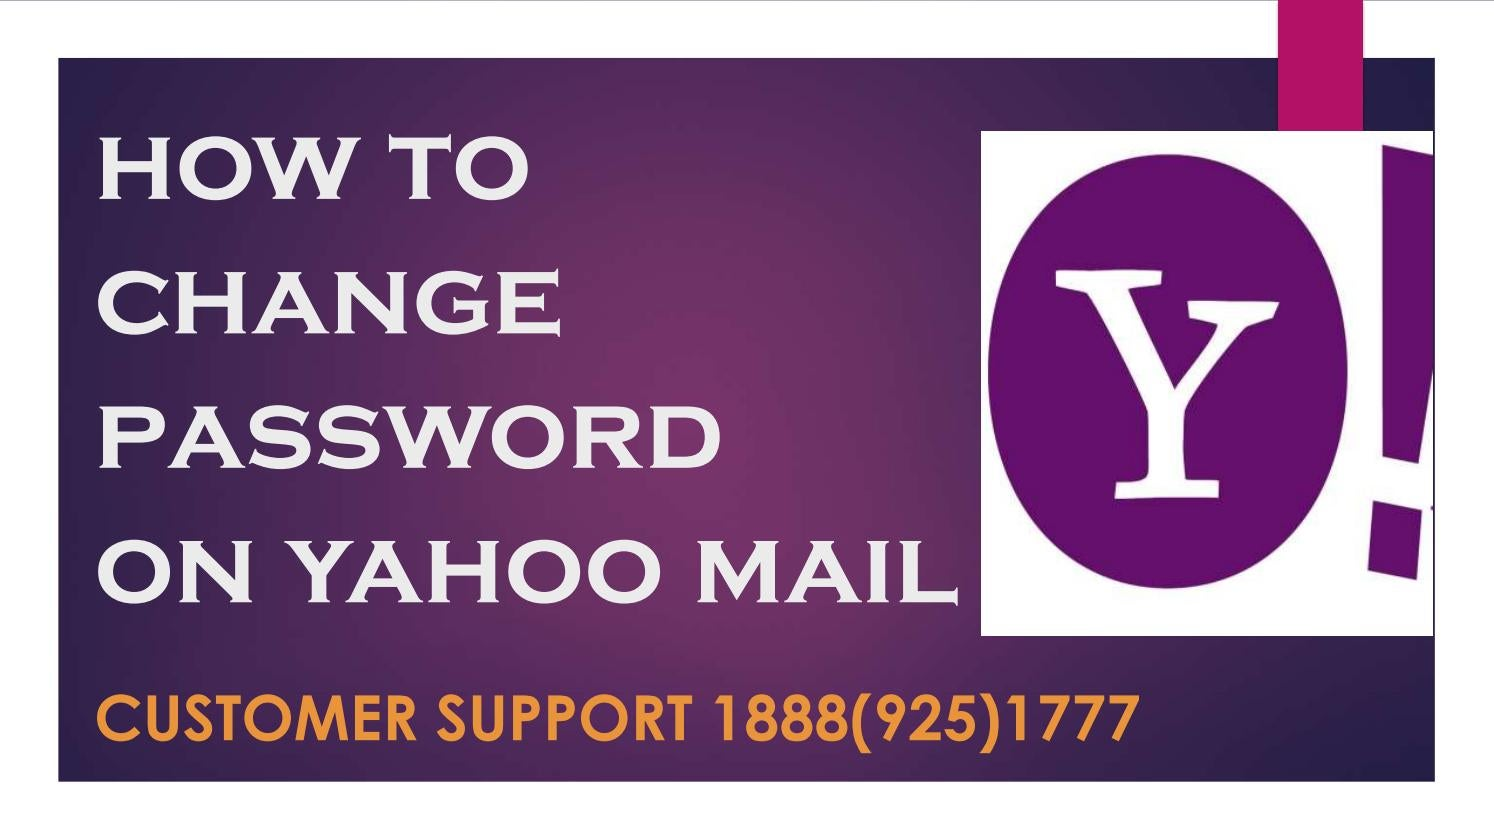 how to change password on yahoo mail